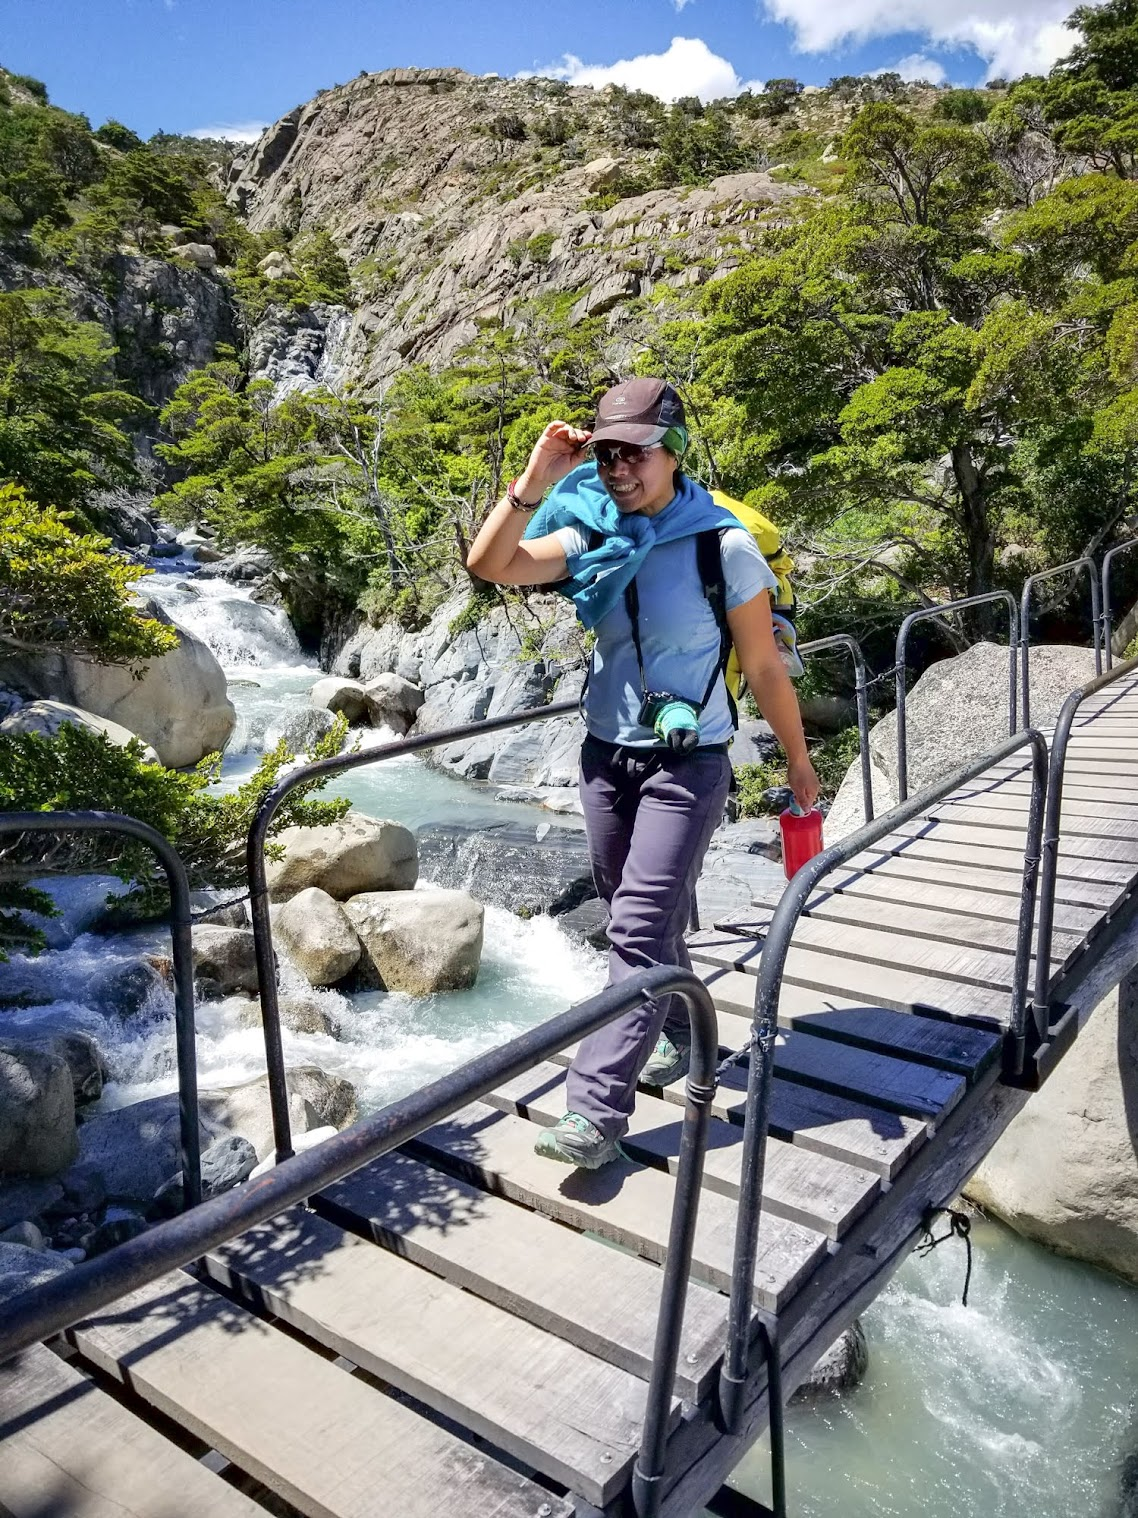 I absolutely loved being a lazy trekker and did the W Trek with just a daypack. Less weight = more fun.